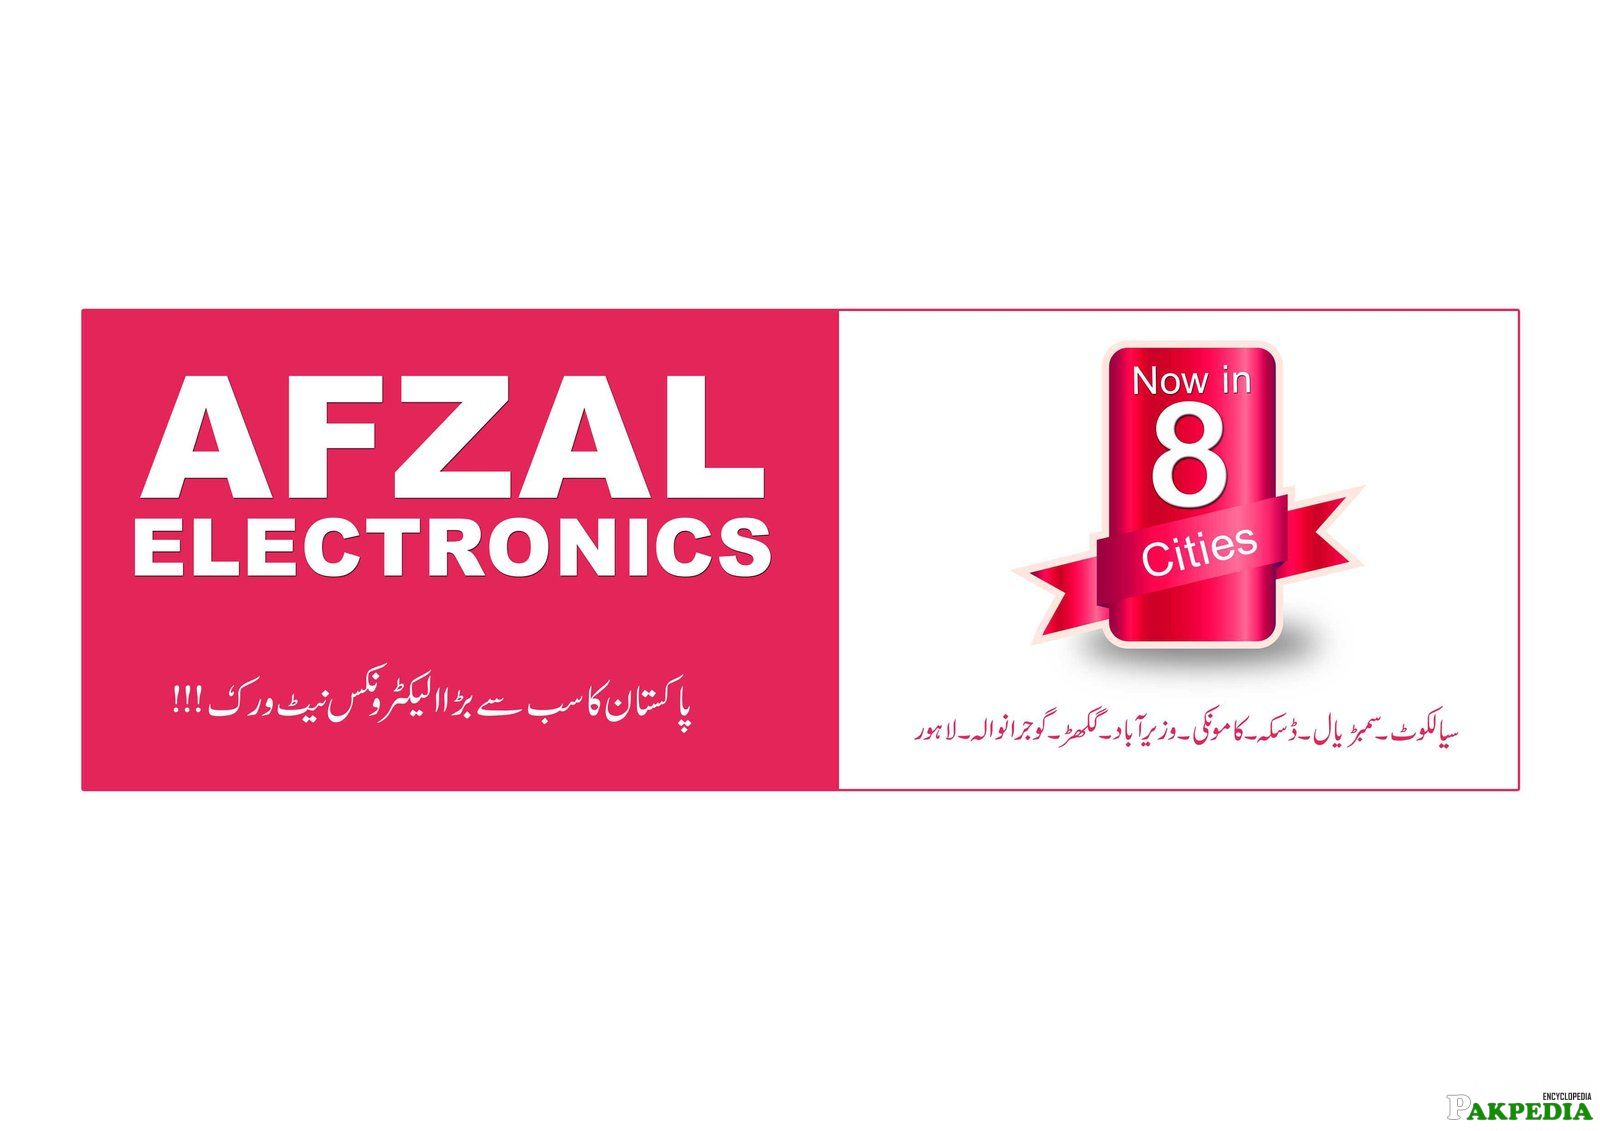 Afzal Electronics in eight cities